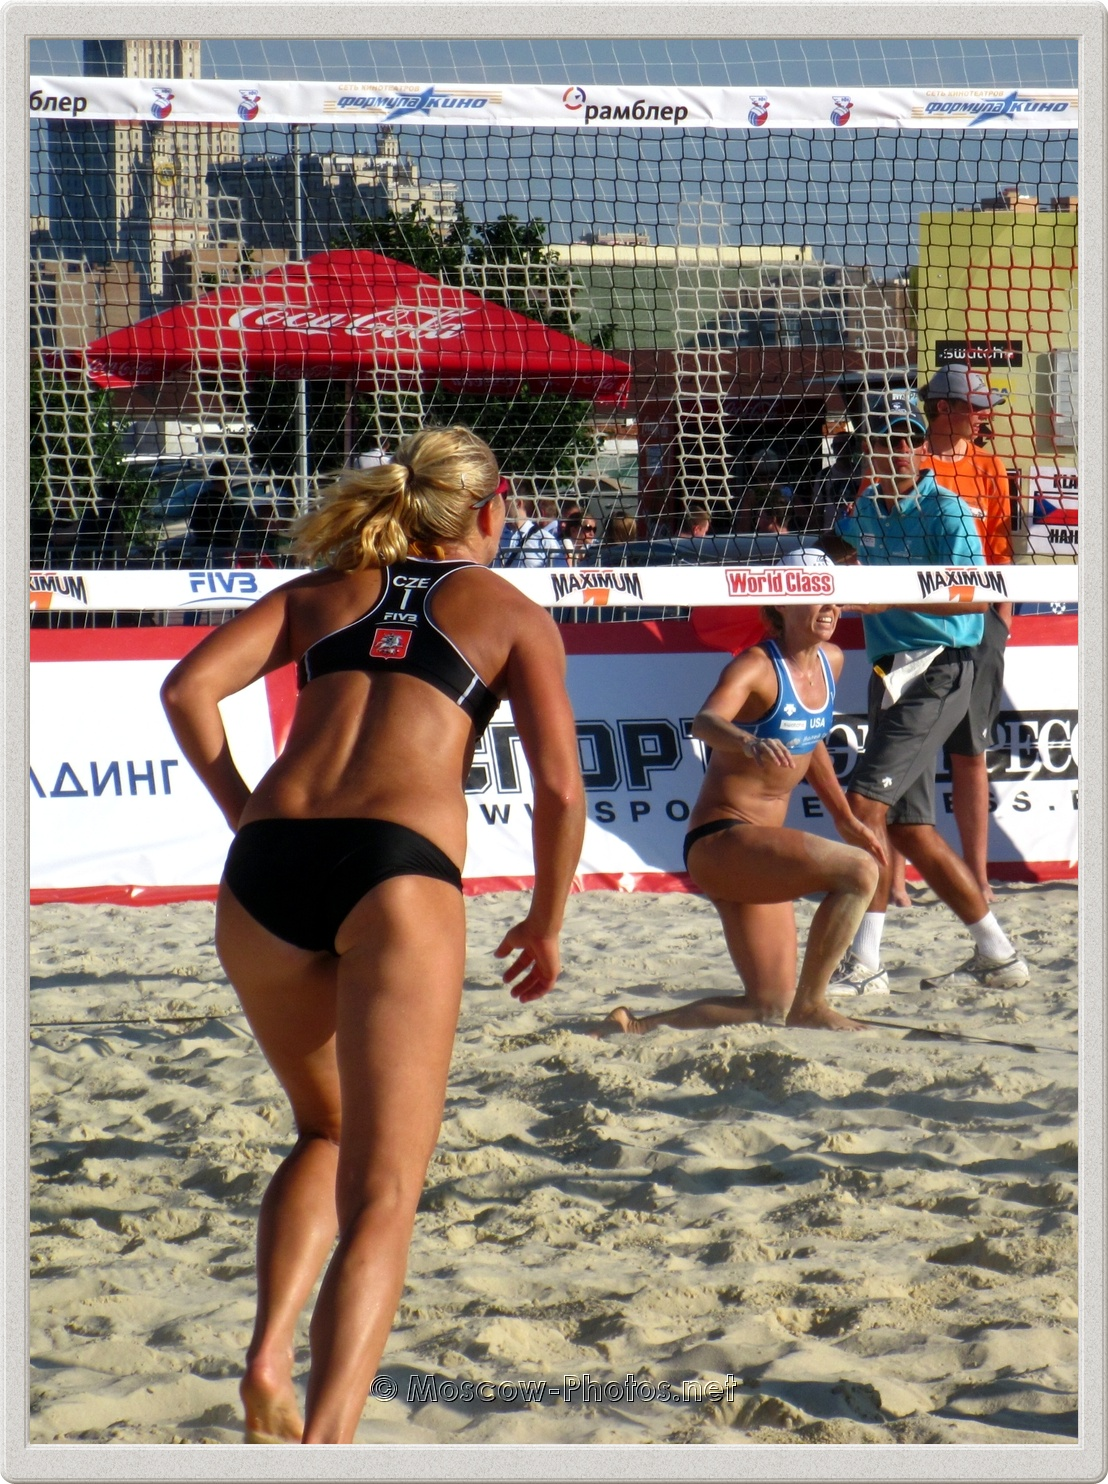 Beach Volleyball Player Hana Klapalova